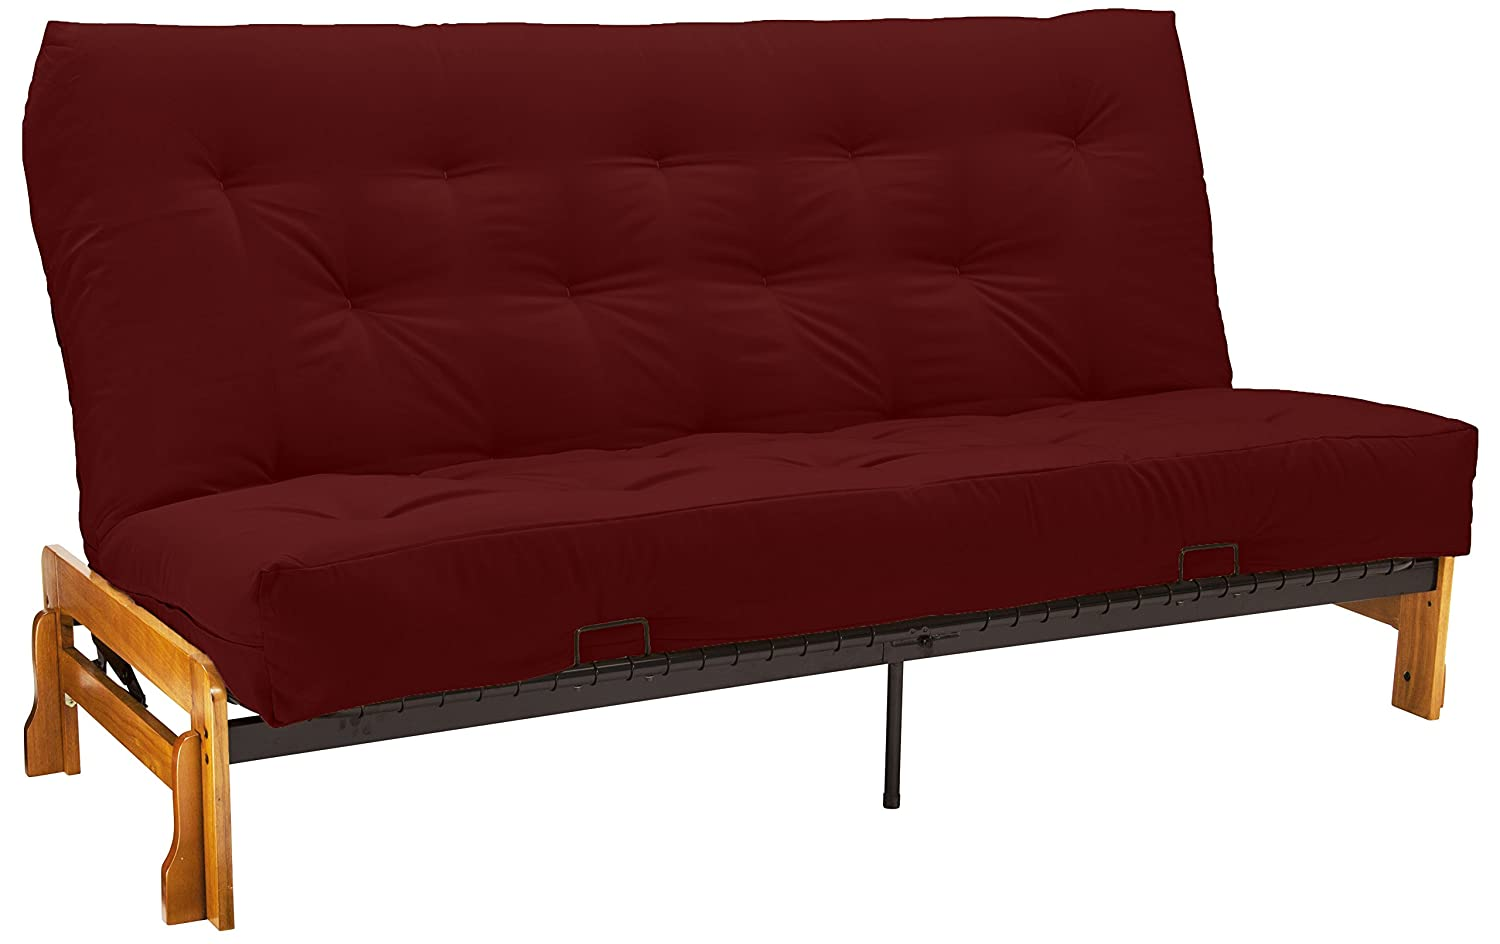 Springaire 8-Inch Loft Inner Spring Futon Mattress, Full-size, Microfiber Suede Cardinal Red Mattress Color Epic Furnishings - DROPSHIP SprFuSueRd